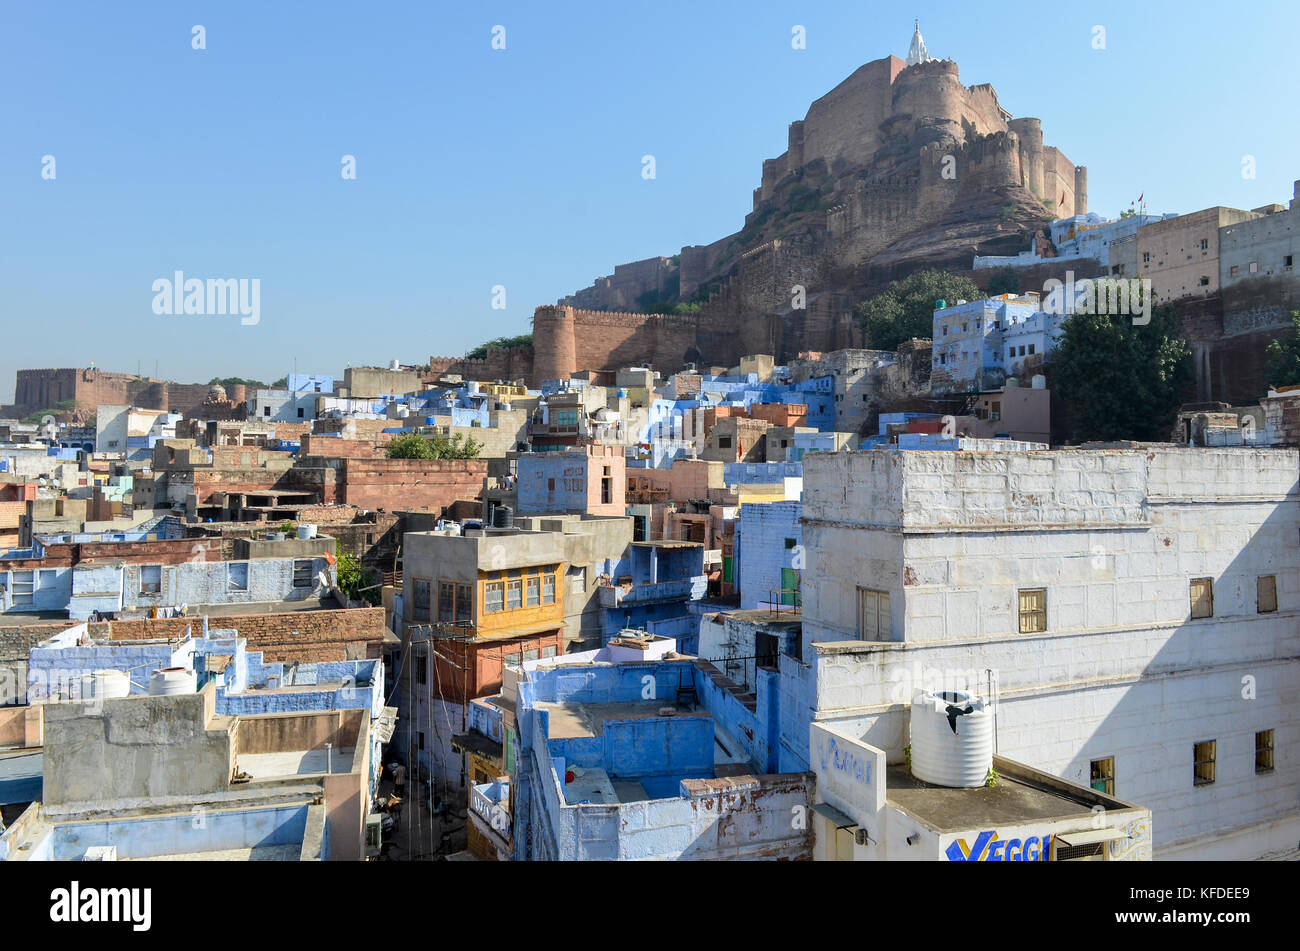 Cityscape of Jodphur with traditional indigo blue and white painted houses and the 15th century Mehrangarh Fortress on the hilltop. Stock Photo